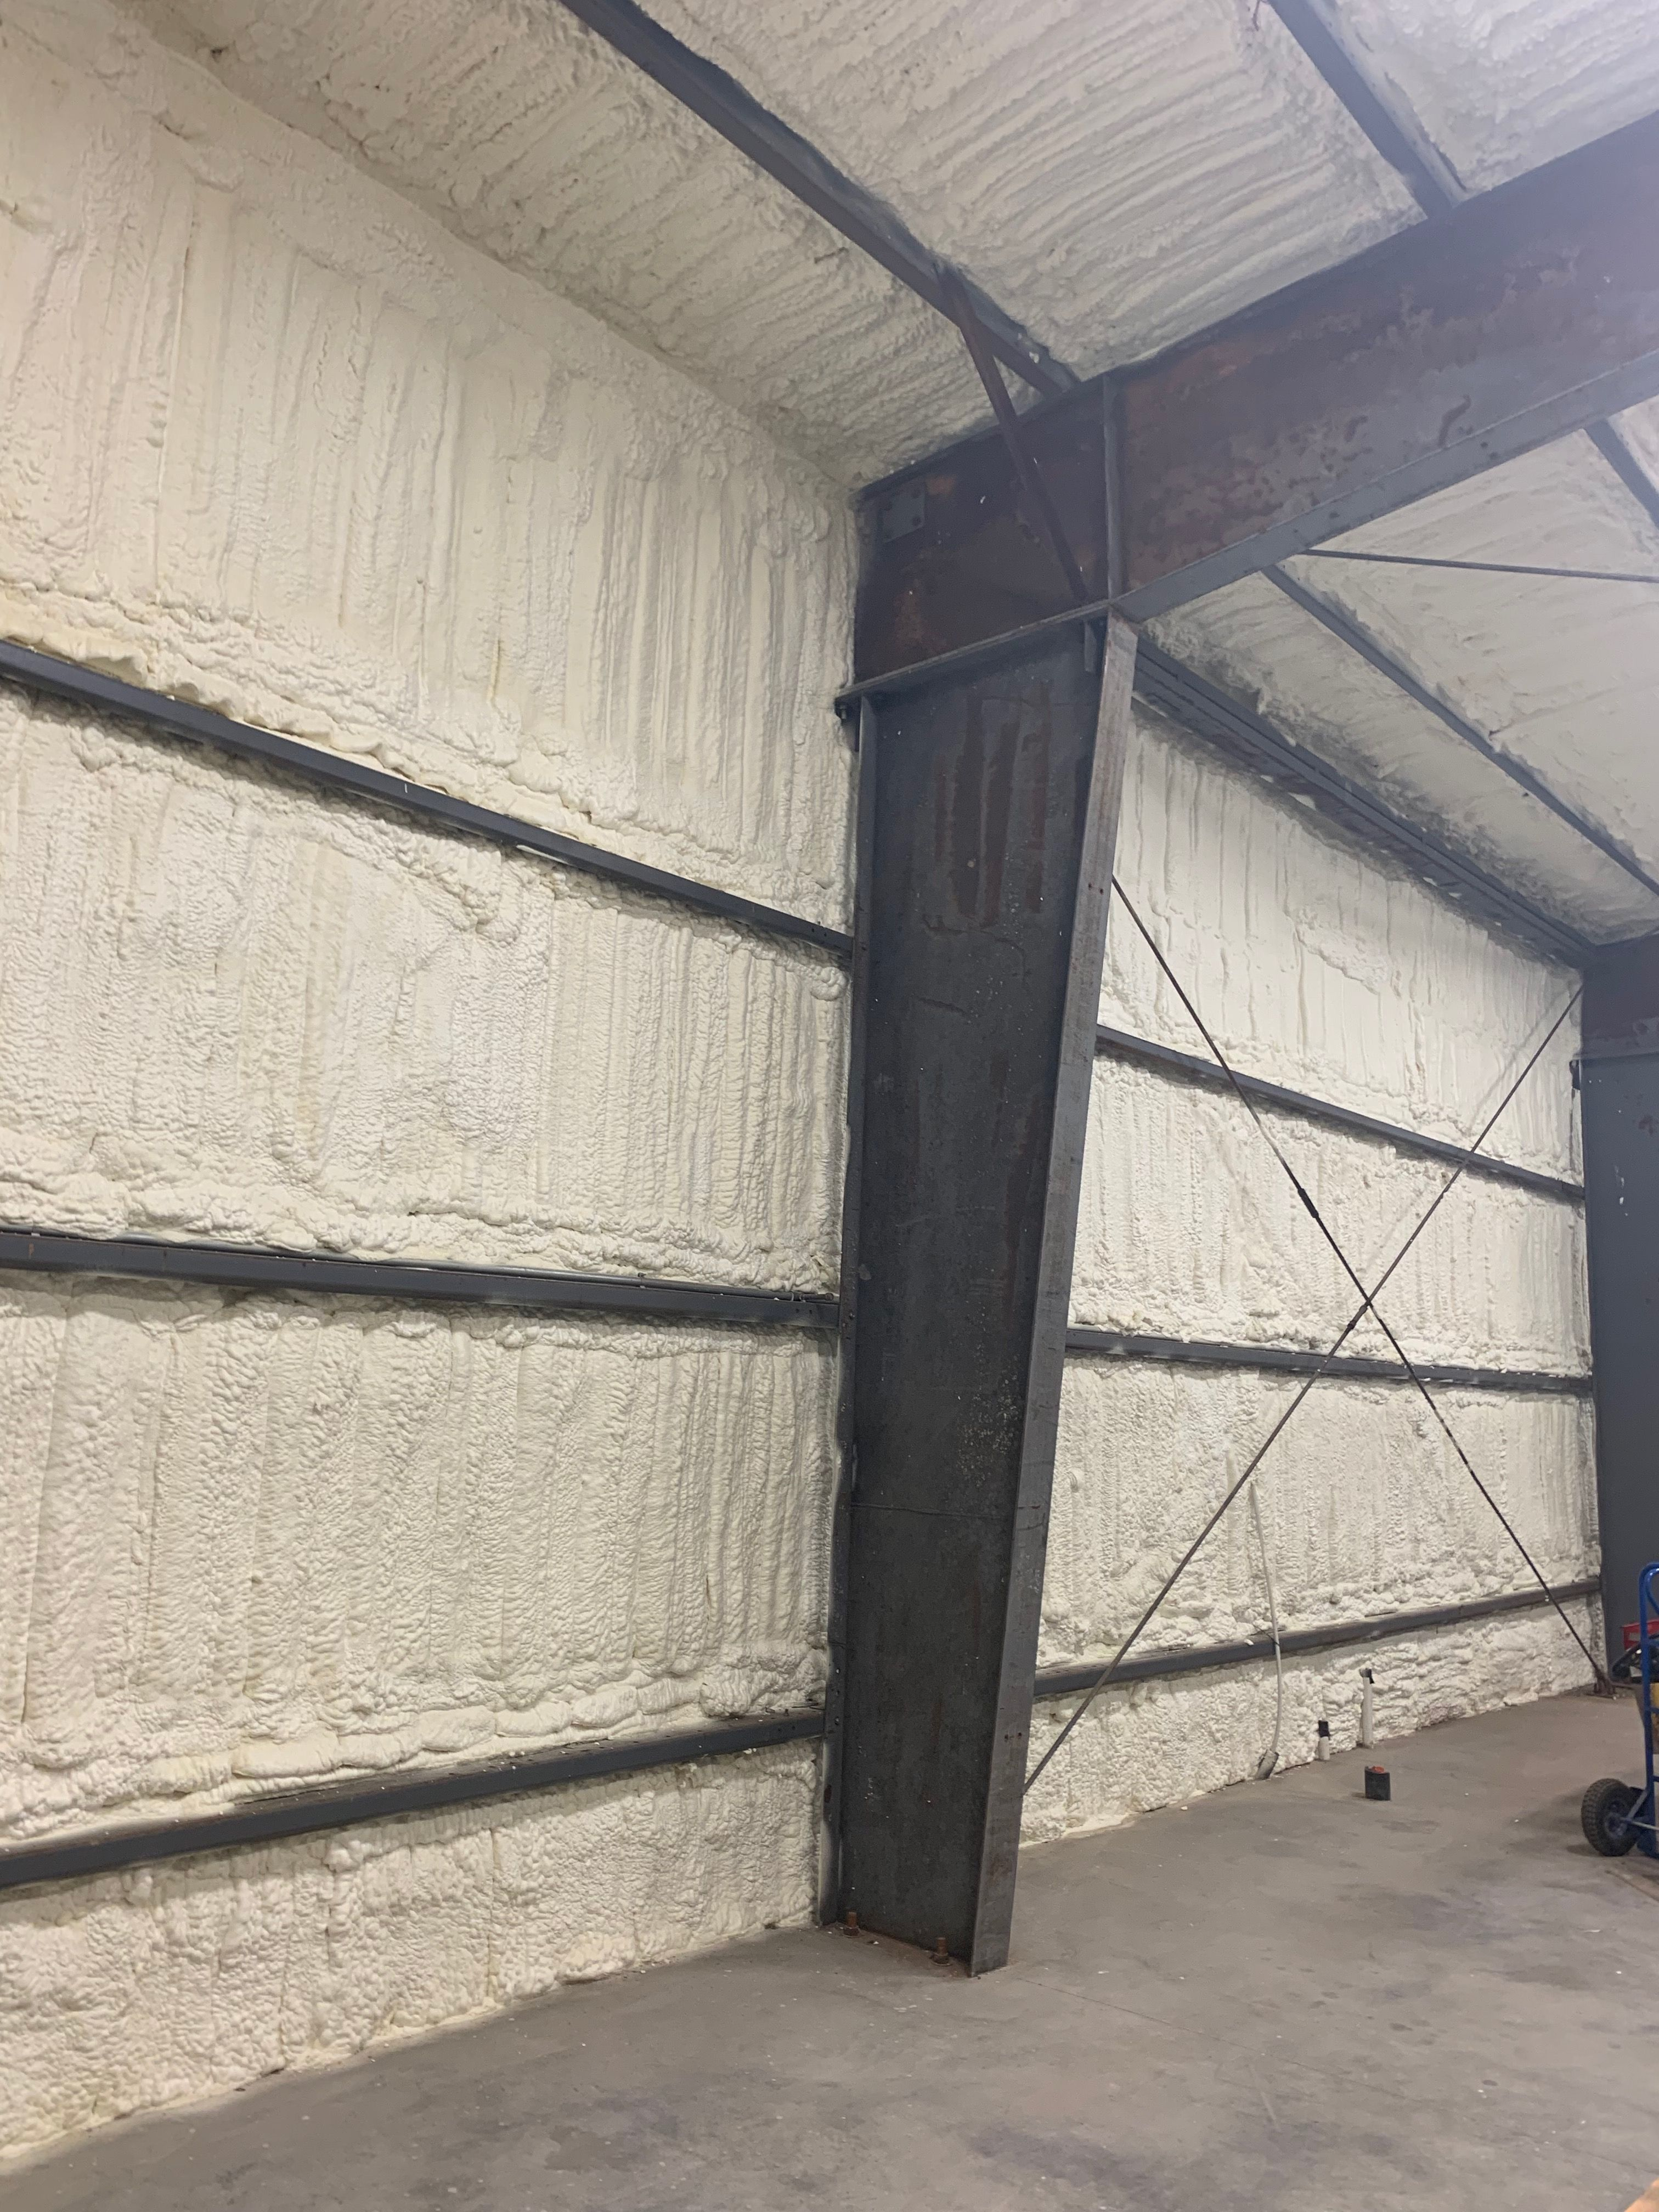 Open Cell Spray Foam Insulation Installed On The Exterior Walls